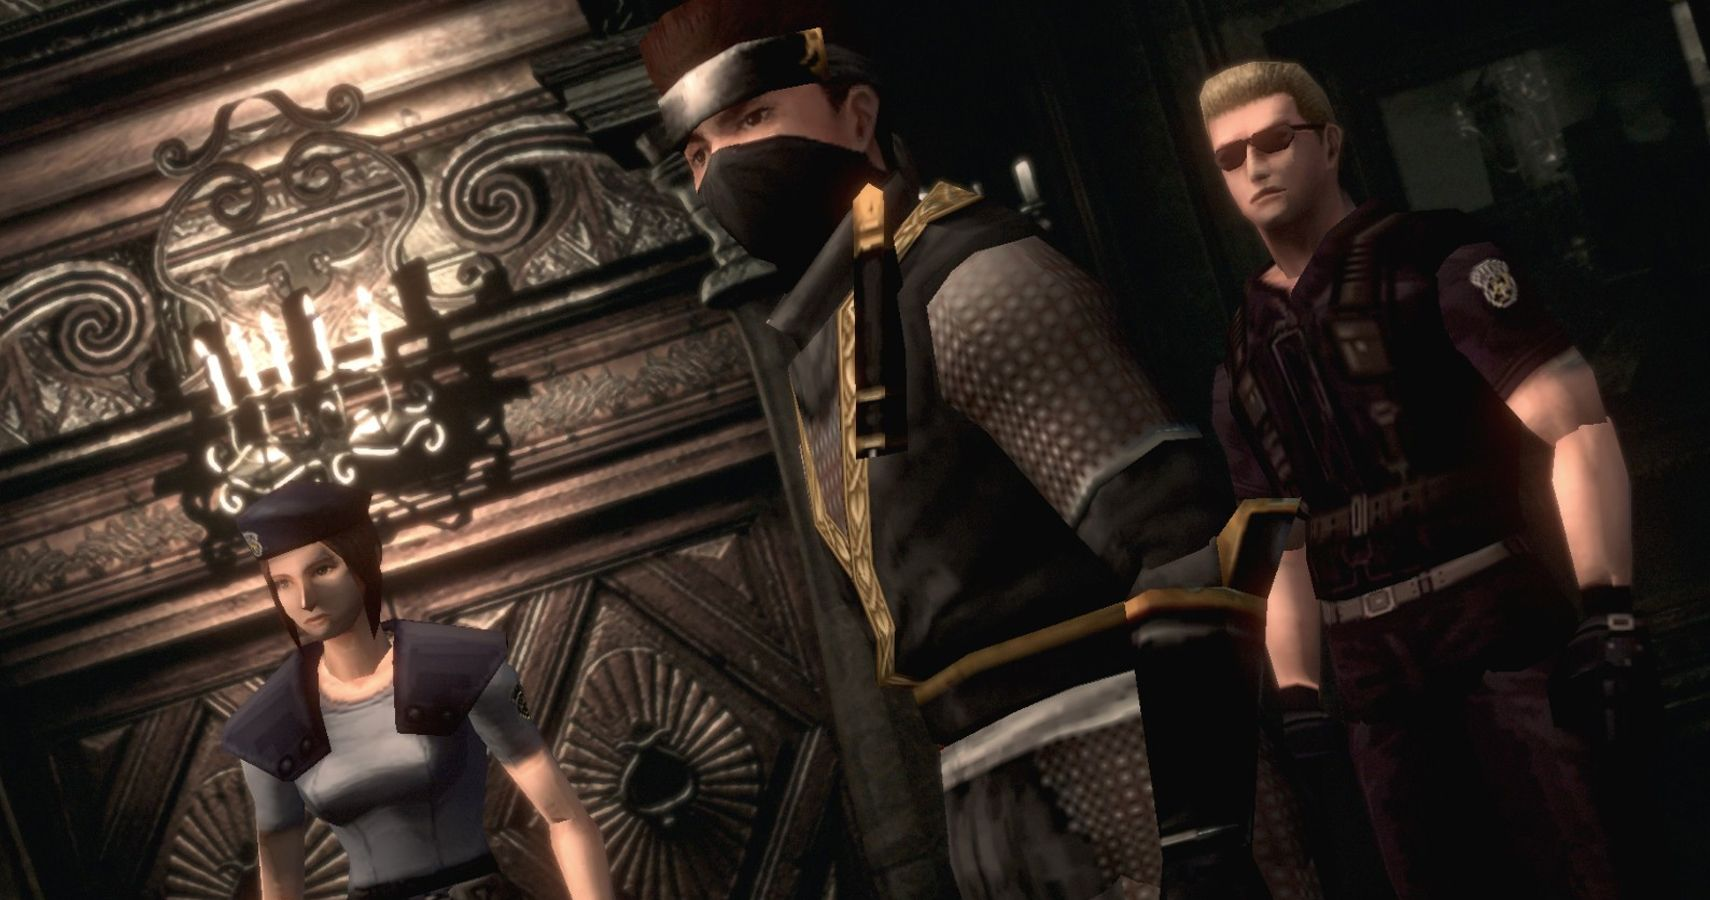 Every Main Resident Evil Game Ranked From Worst To Best (According